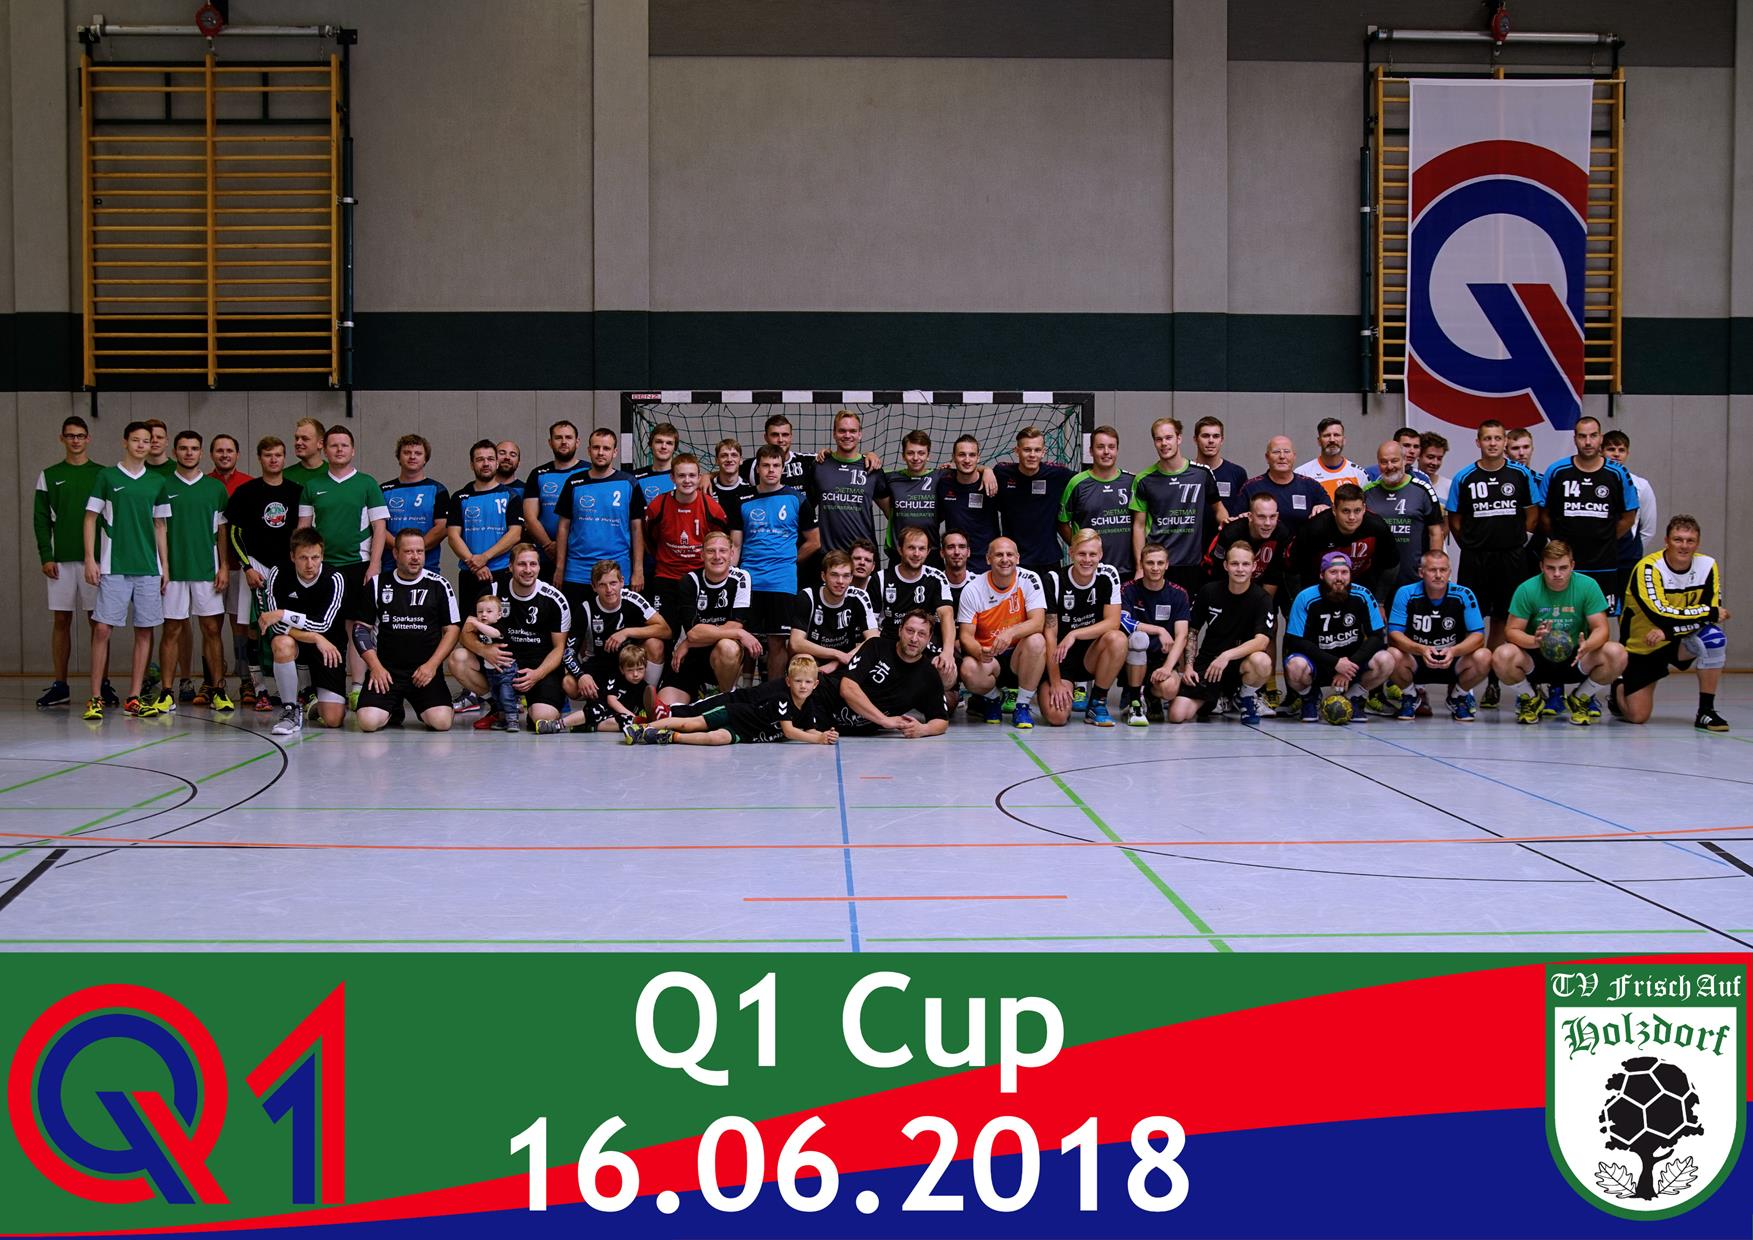 Q1 Cup